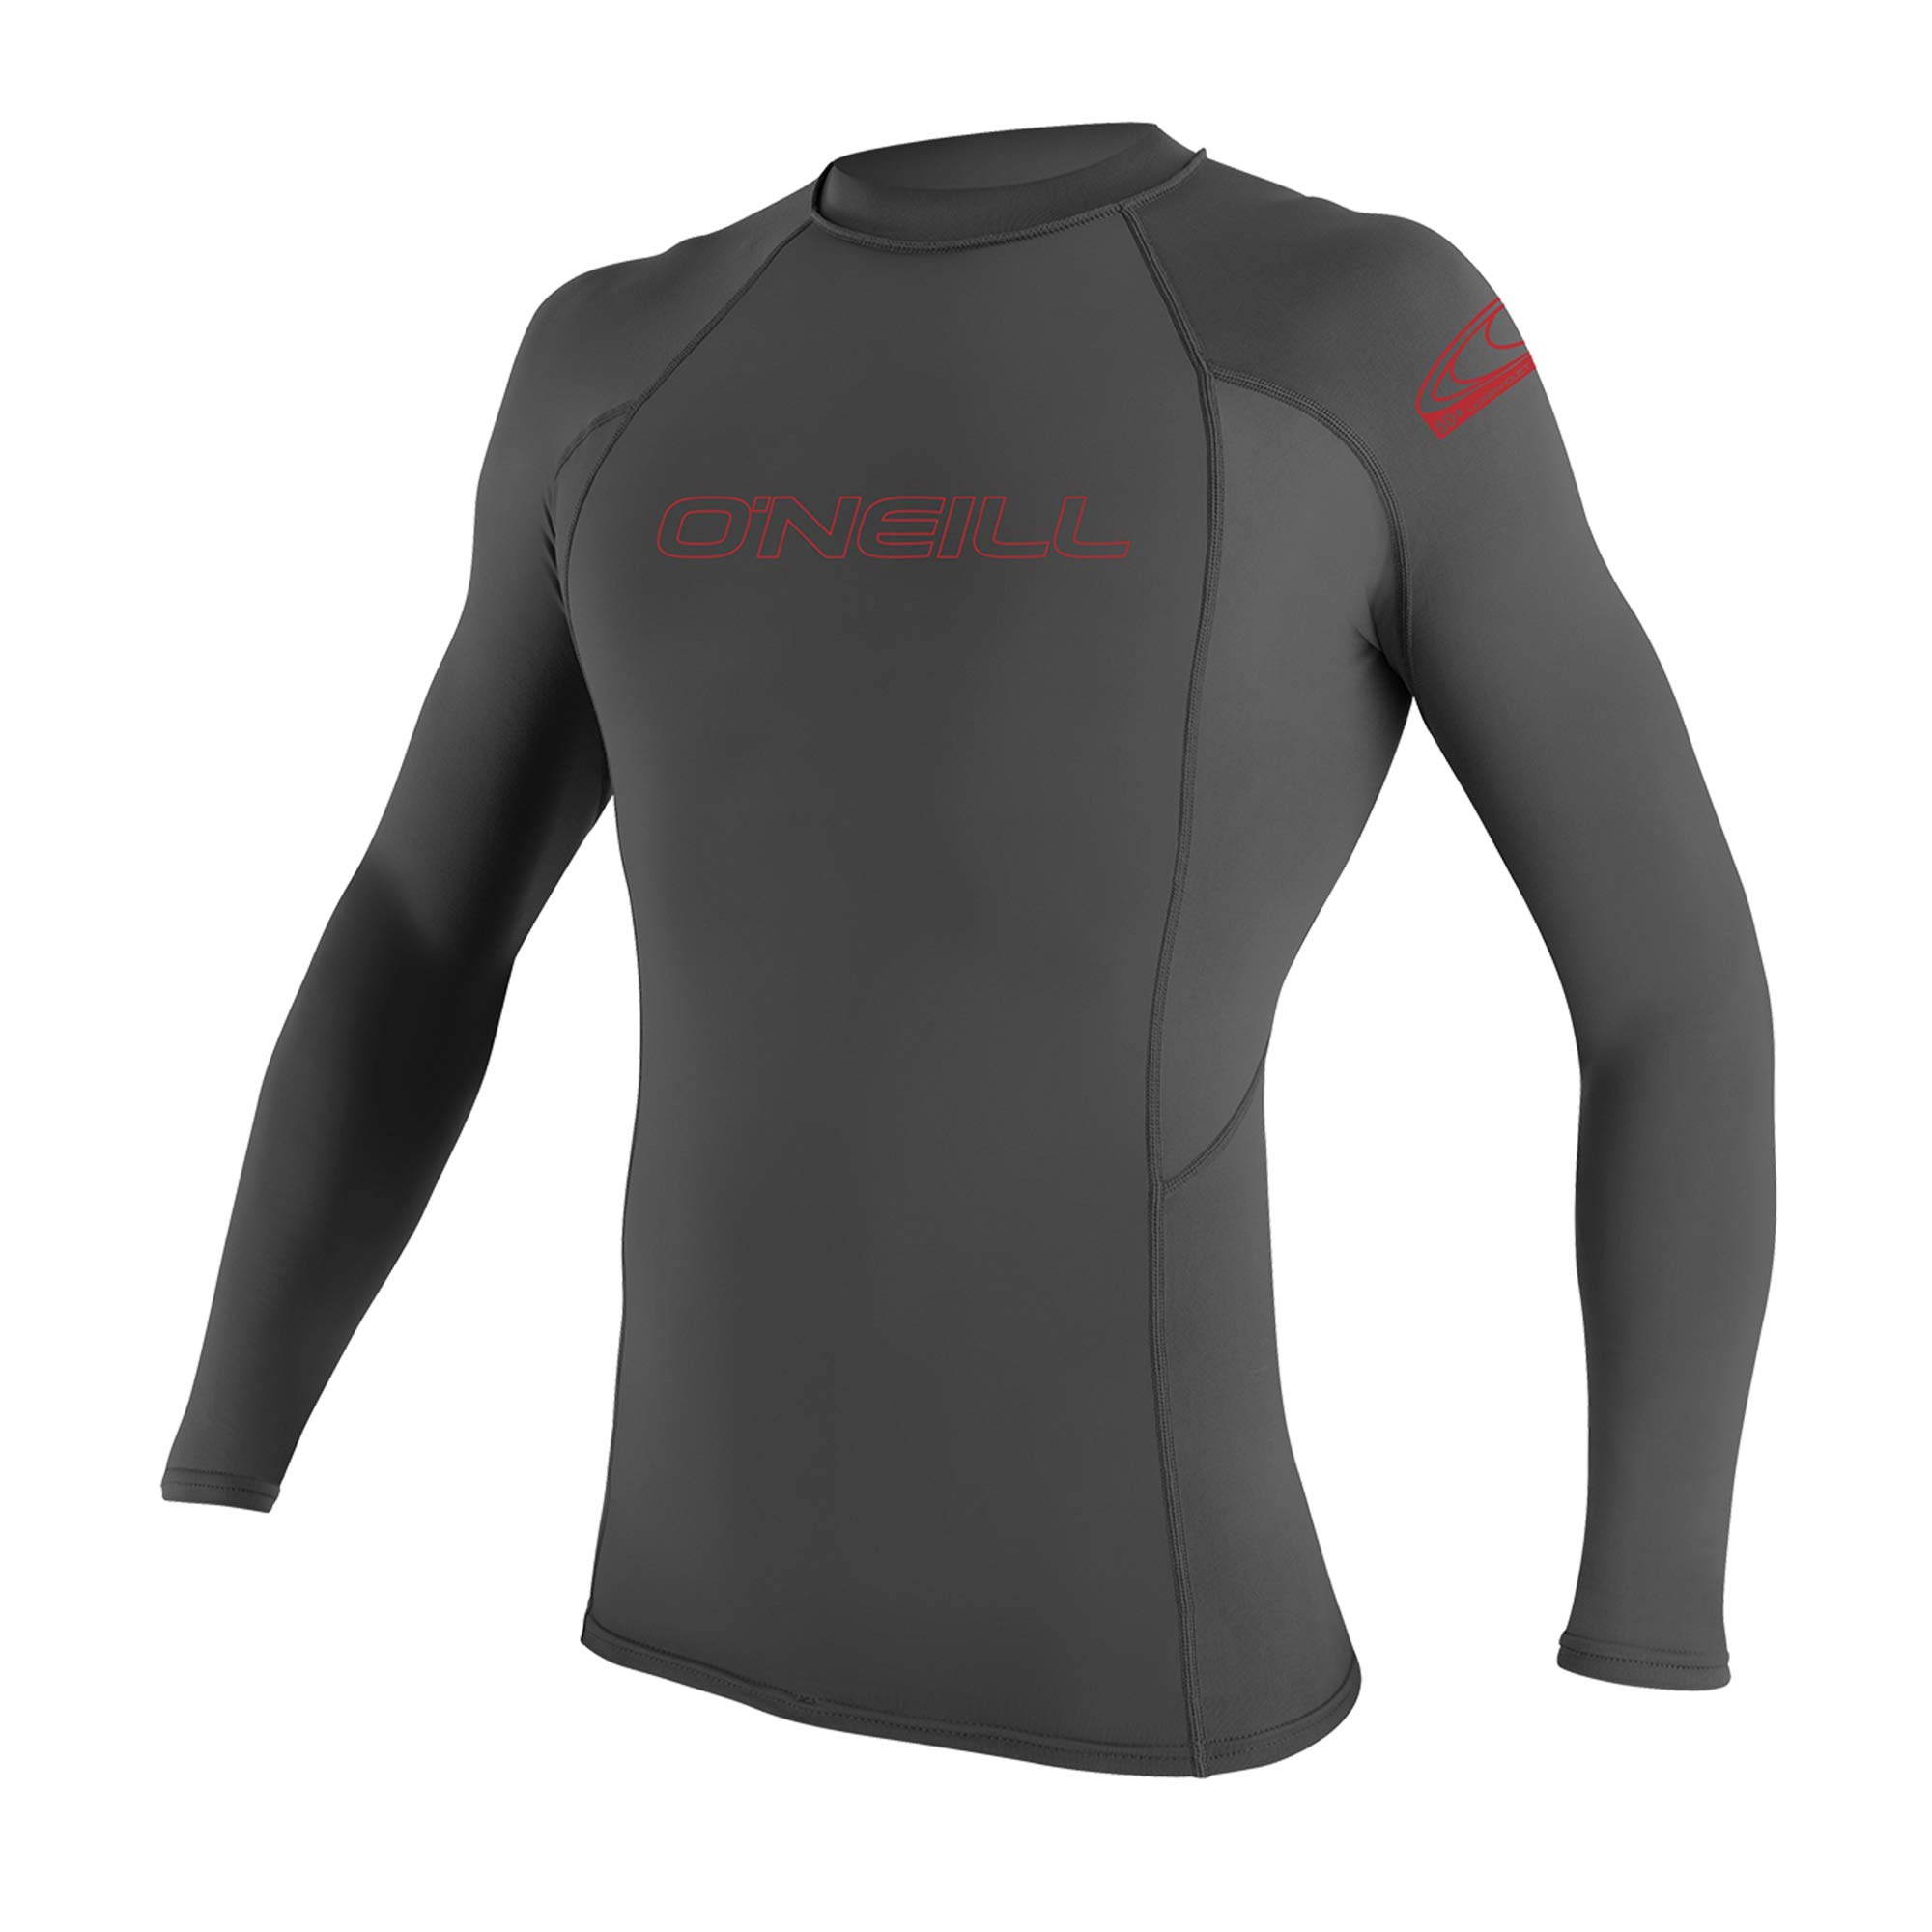 O'Neill Youth Basic Skins UPF 50+ Long Sleeve Rash Guard, Graphite, 8 by O'Neill Wetsuits